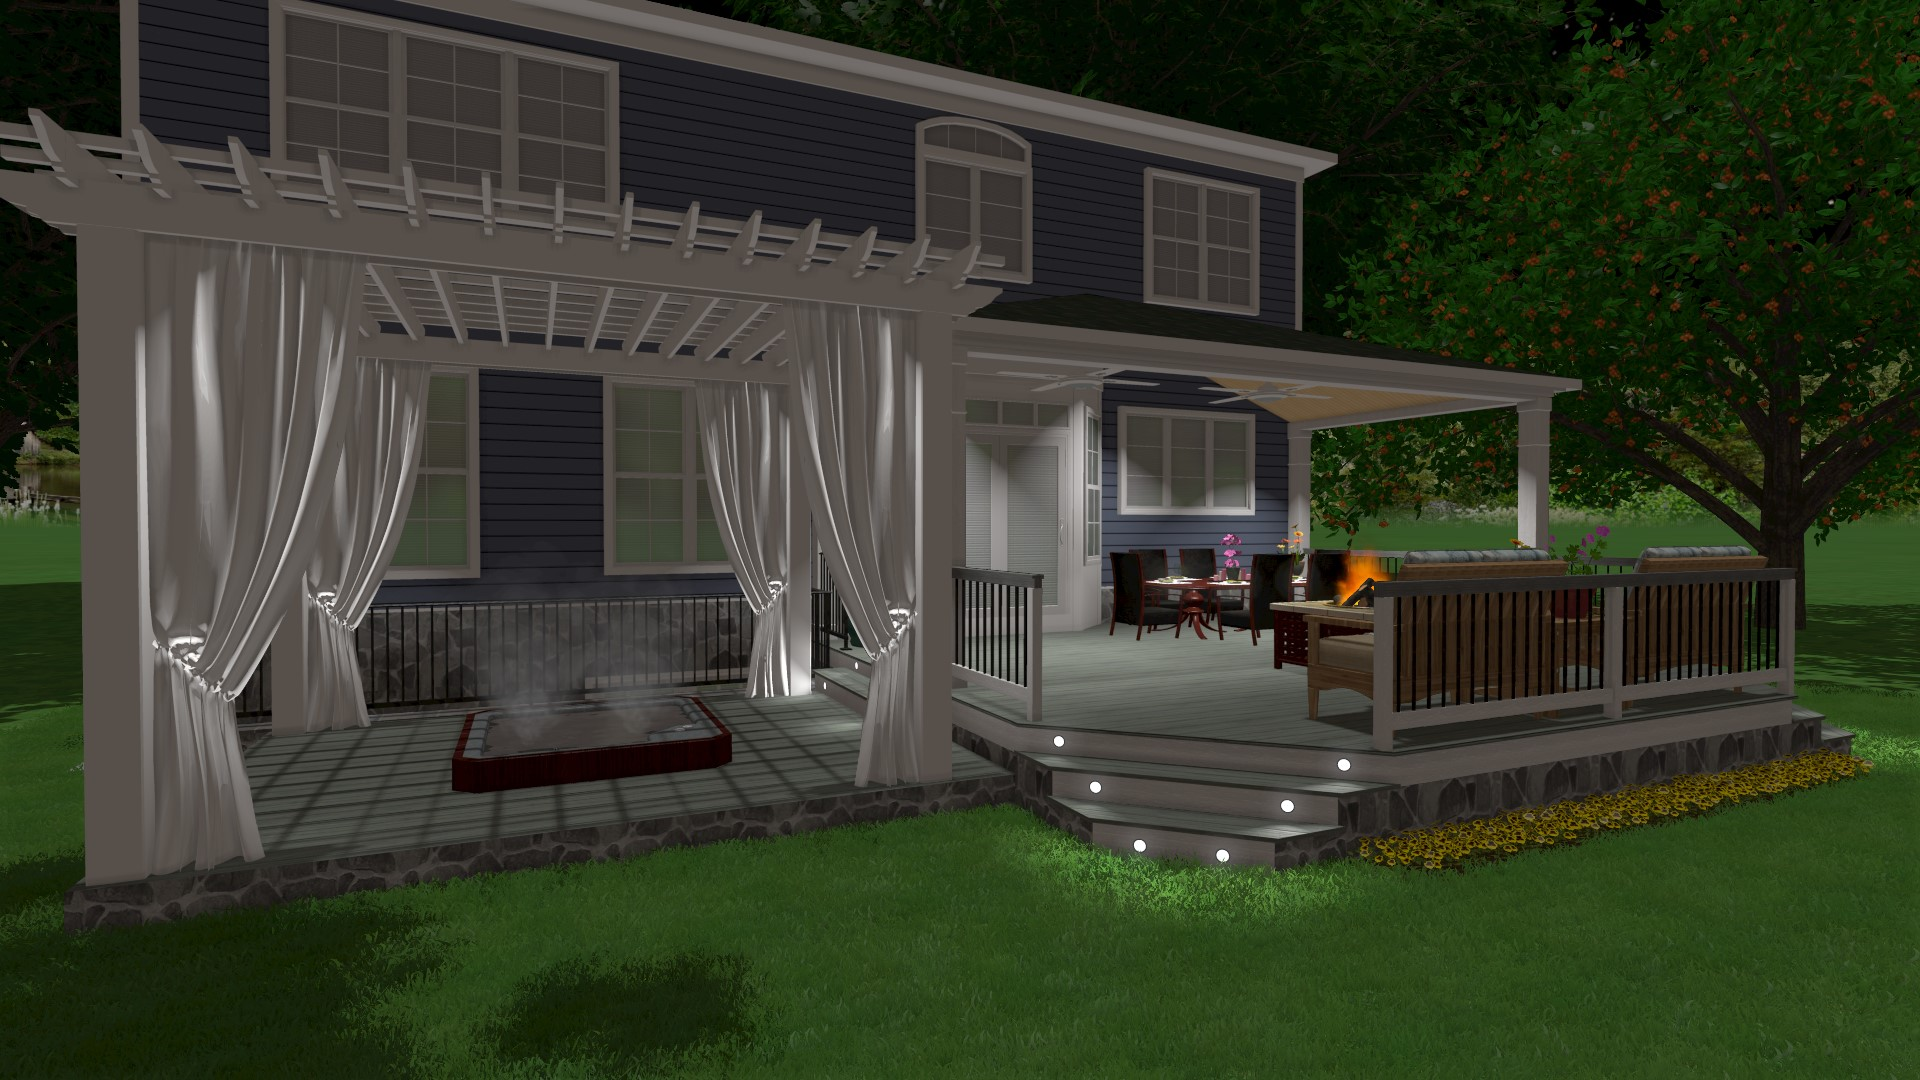 Phoenix Home Services Provides 3D Designs of Your Project